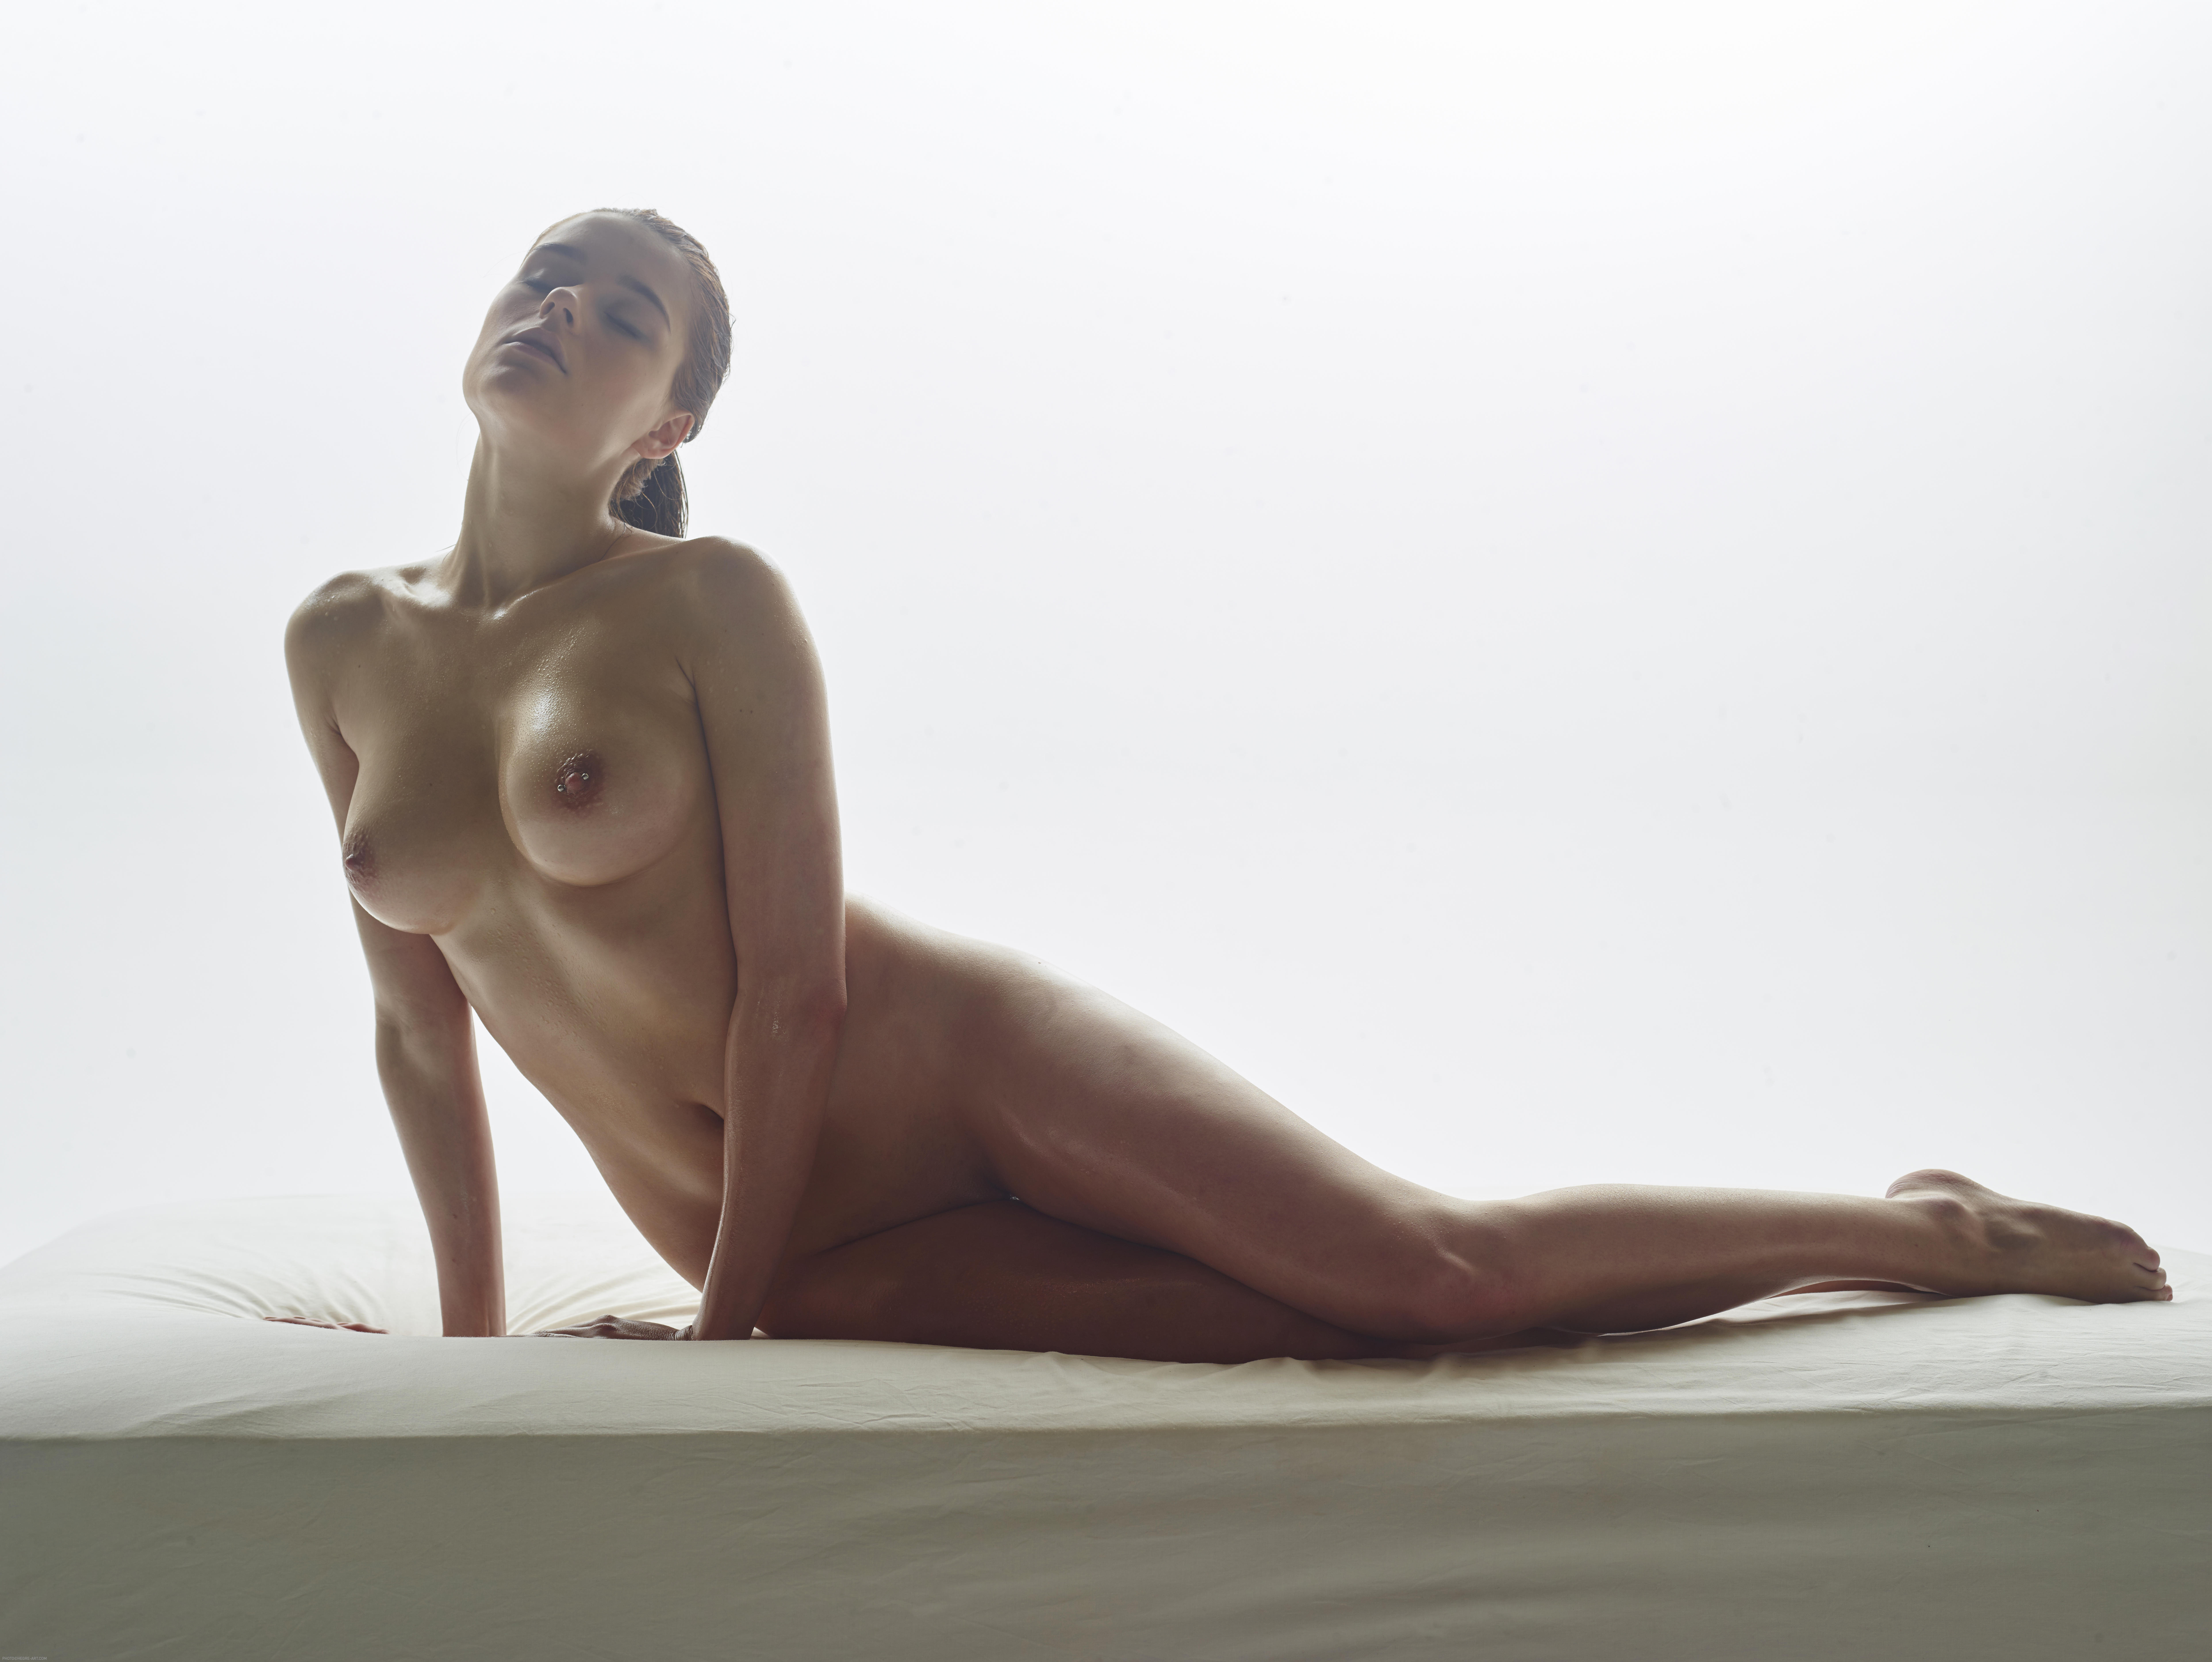 You Ultra high resolution indian nude images